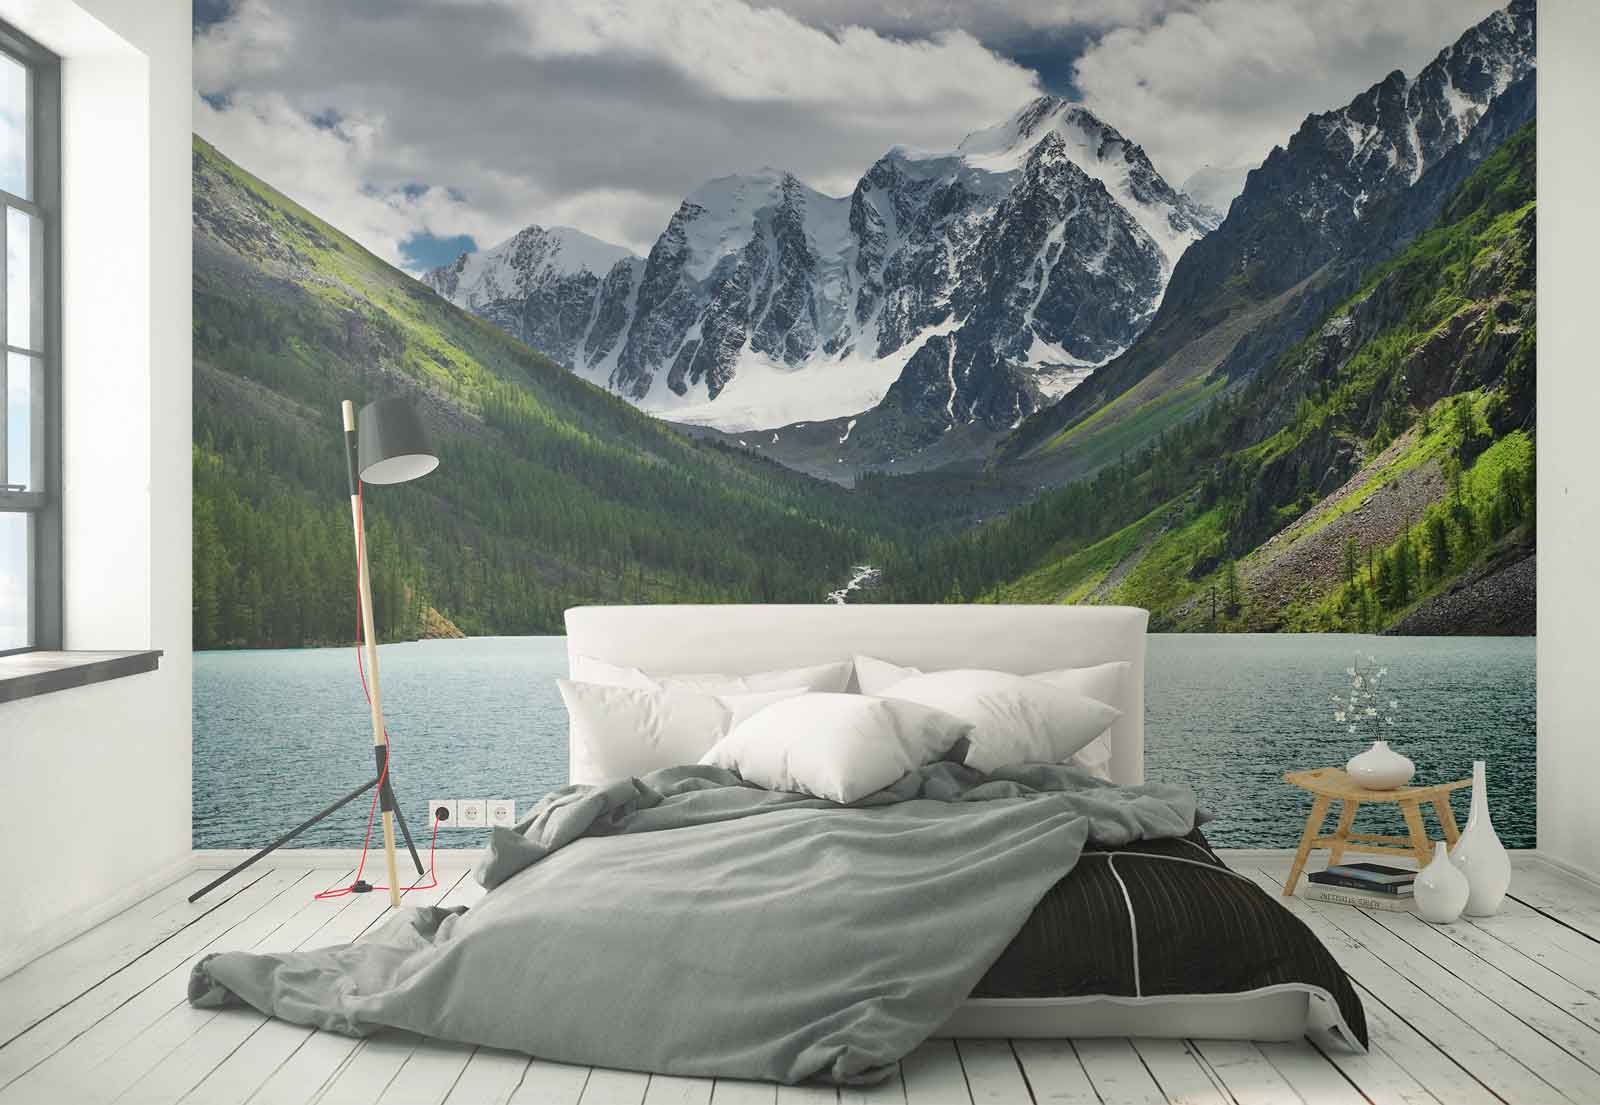 Lake mountains snow photo wallpaper wall mural fw 1062 ebay image is loading lake mountains snow photo wallpaper wall mural fw amipublicfo Gallery